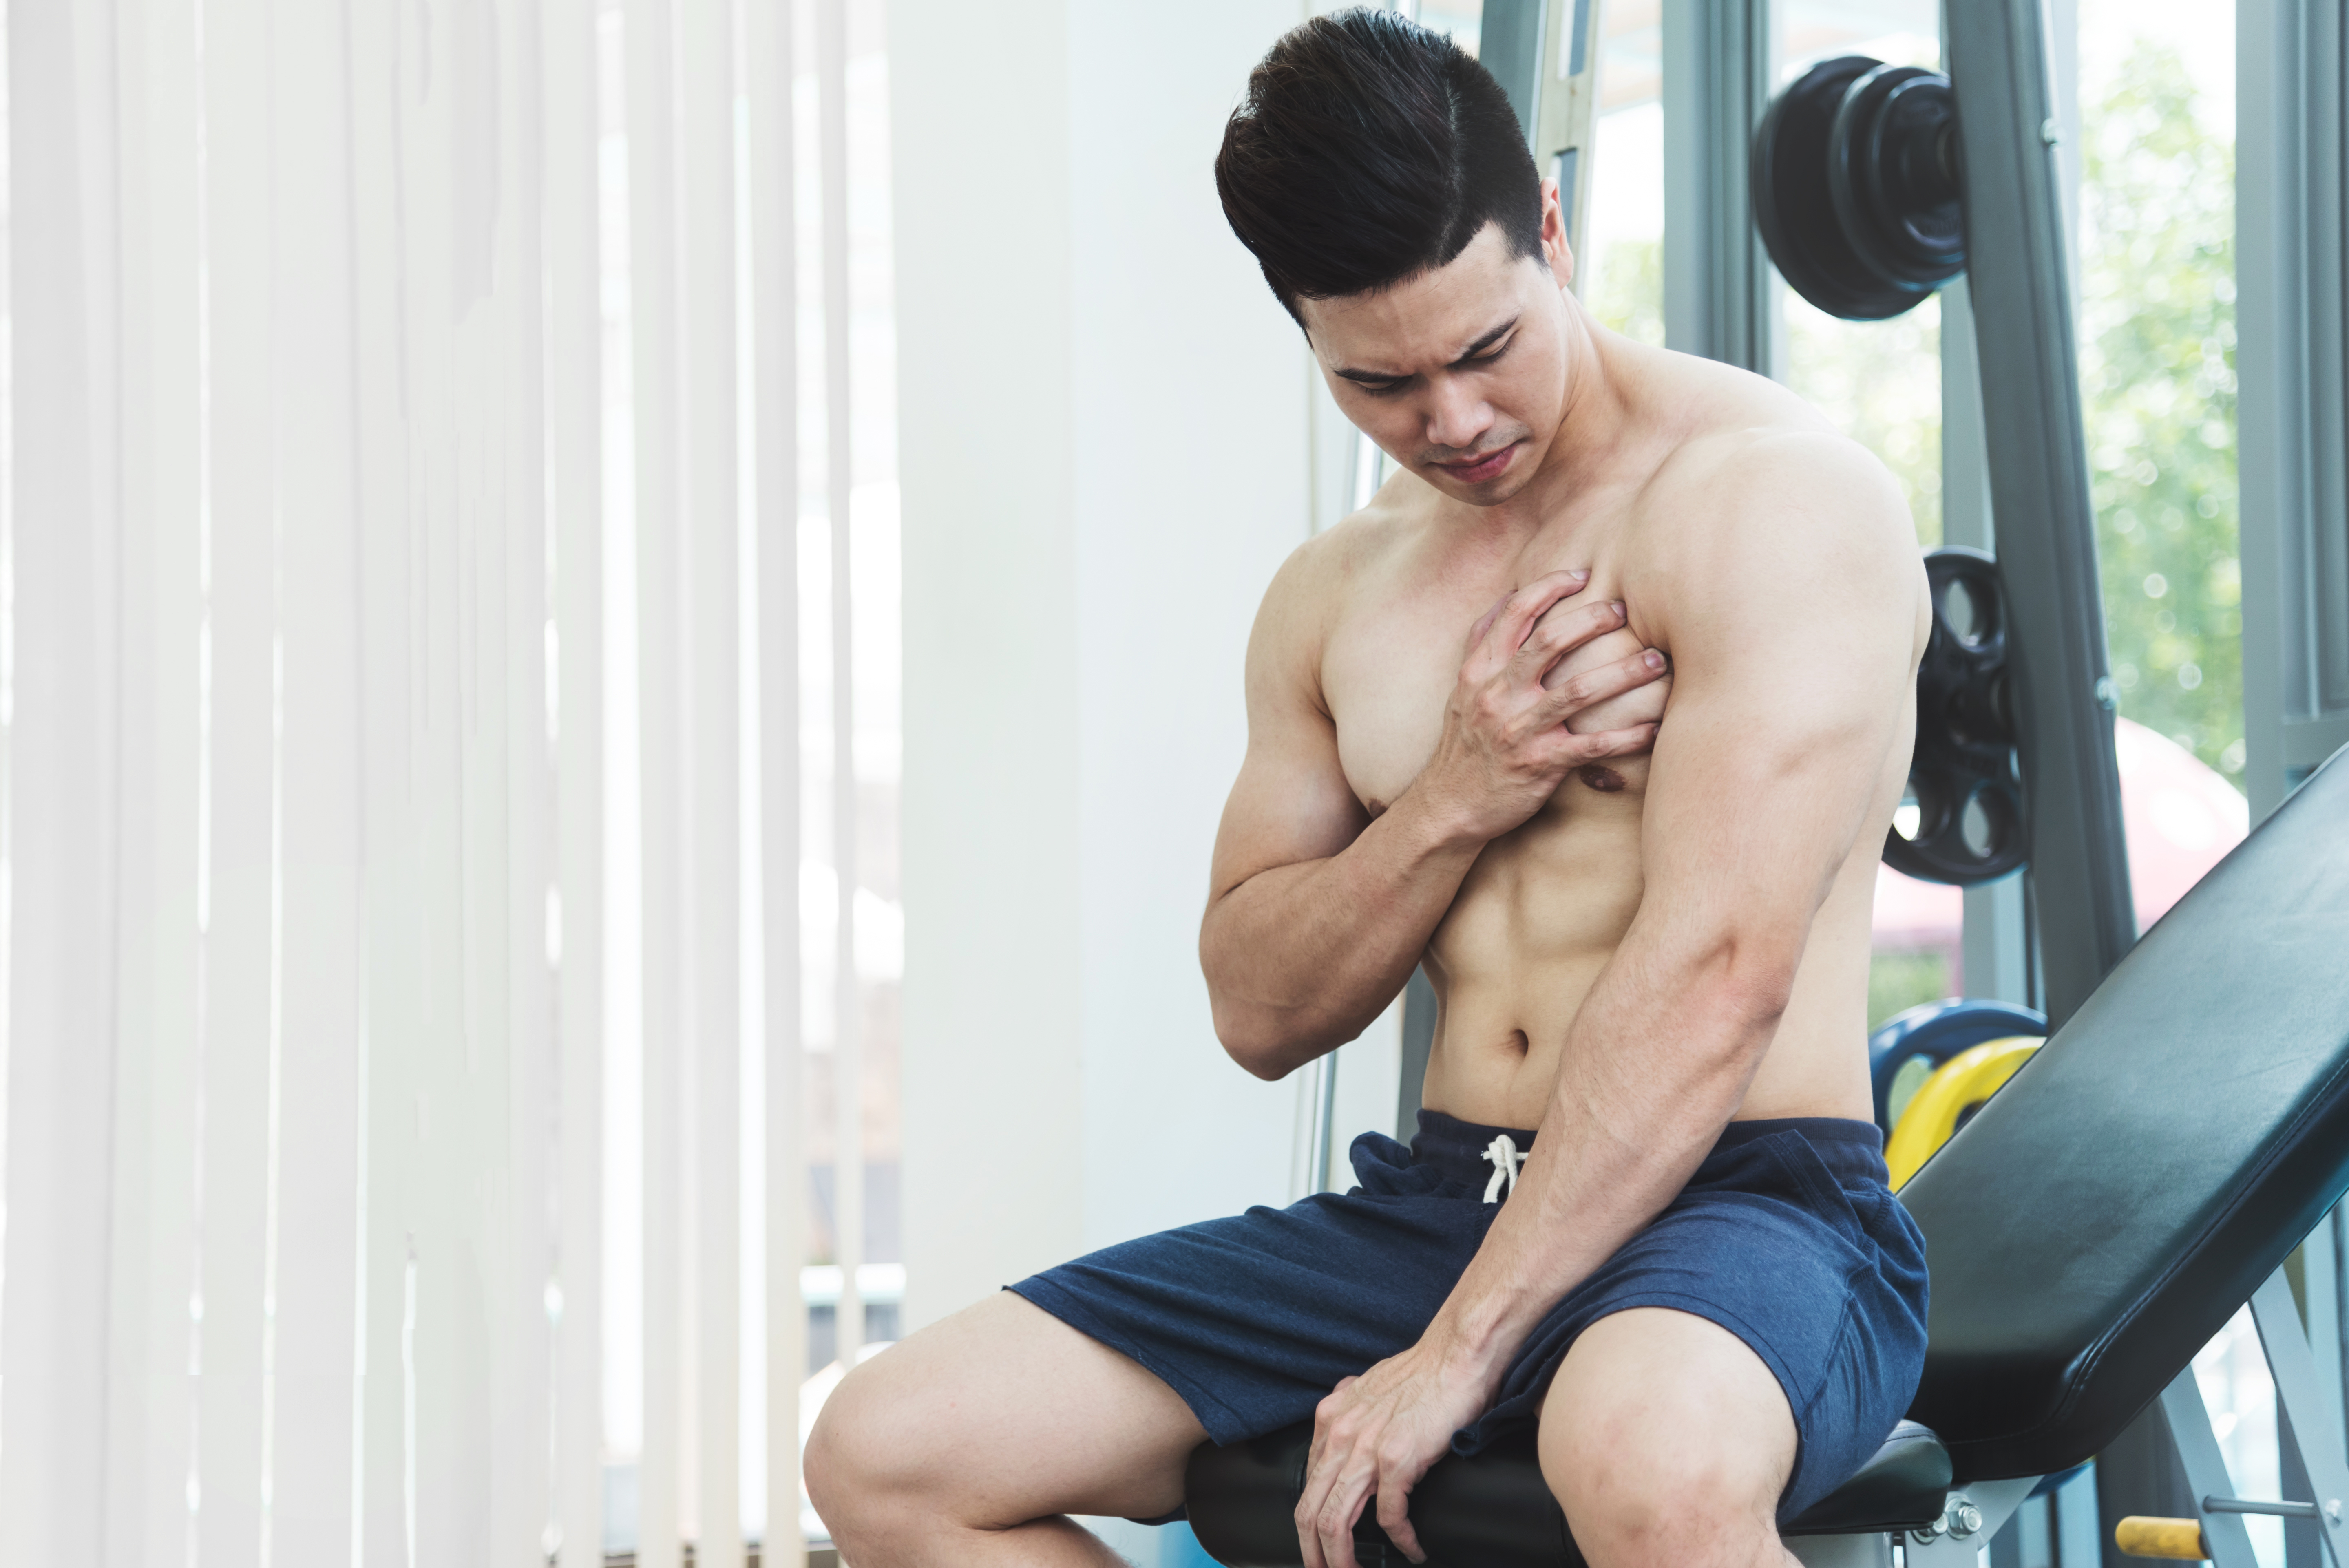 Heart Palpitations During Weightlifting: Causes, Solutions